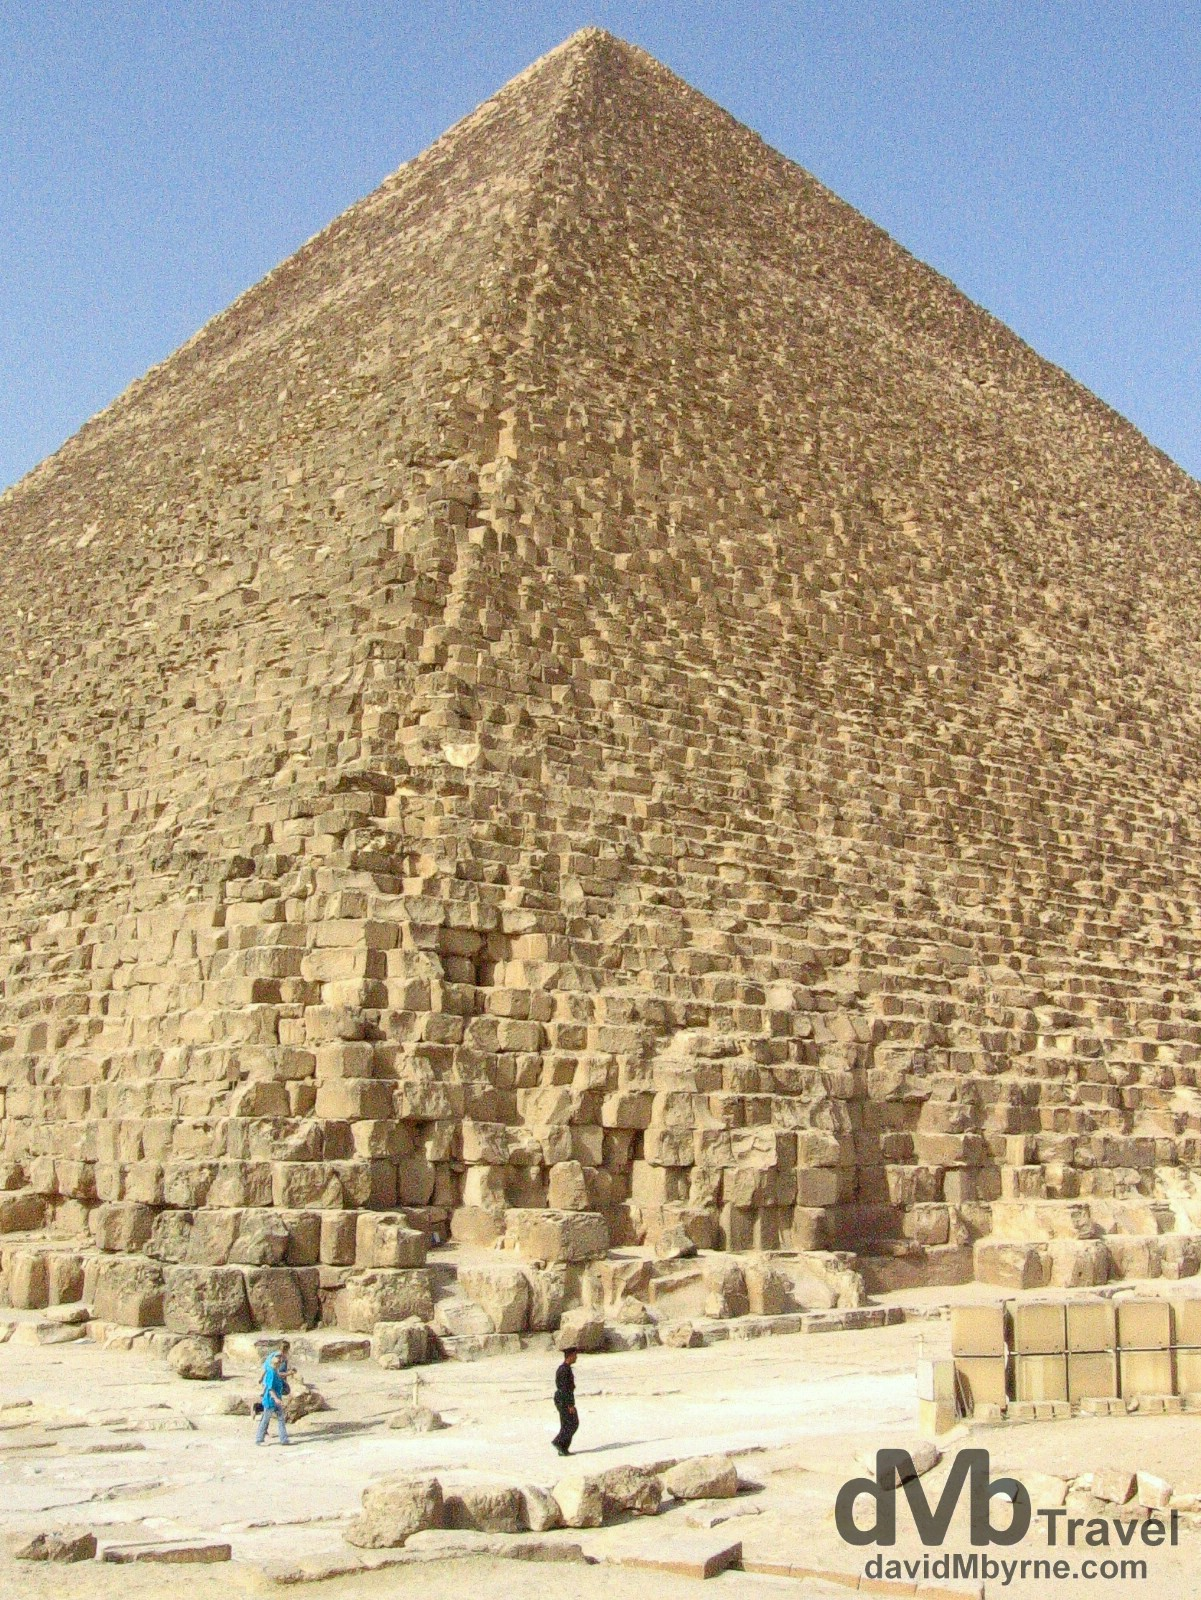 At the base of The Great Pyramid of Khufu on The Giza Plateau, Giza, Egypt. April 13, 2008.